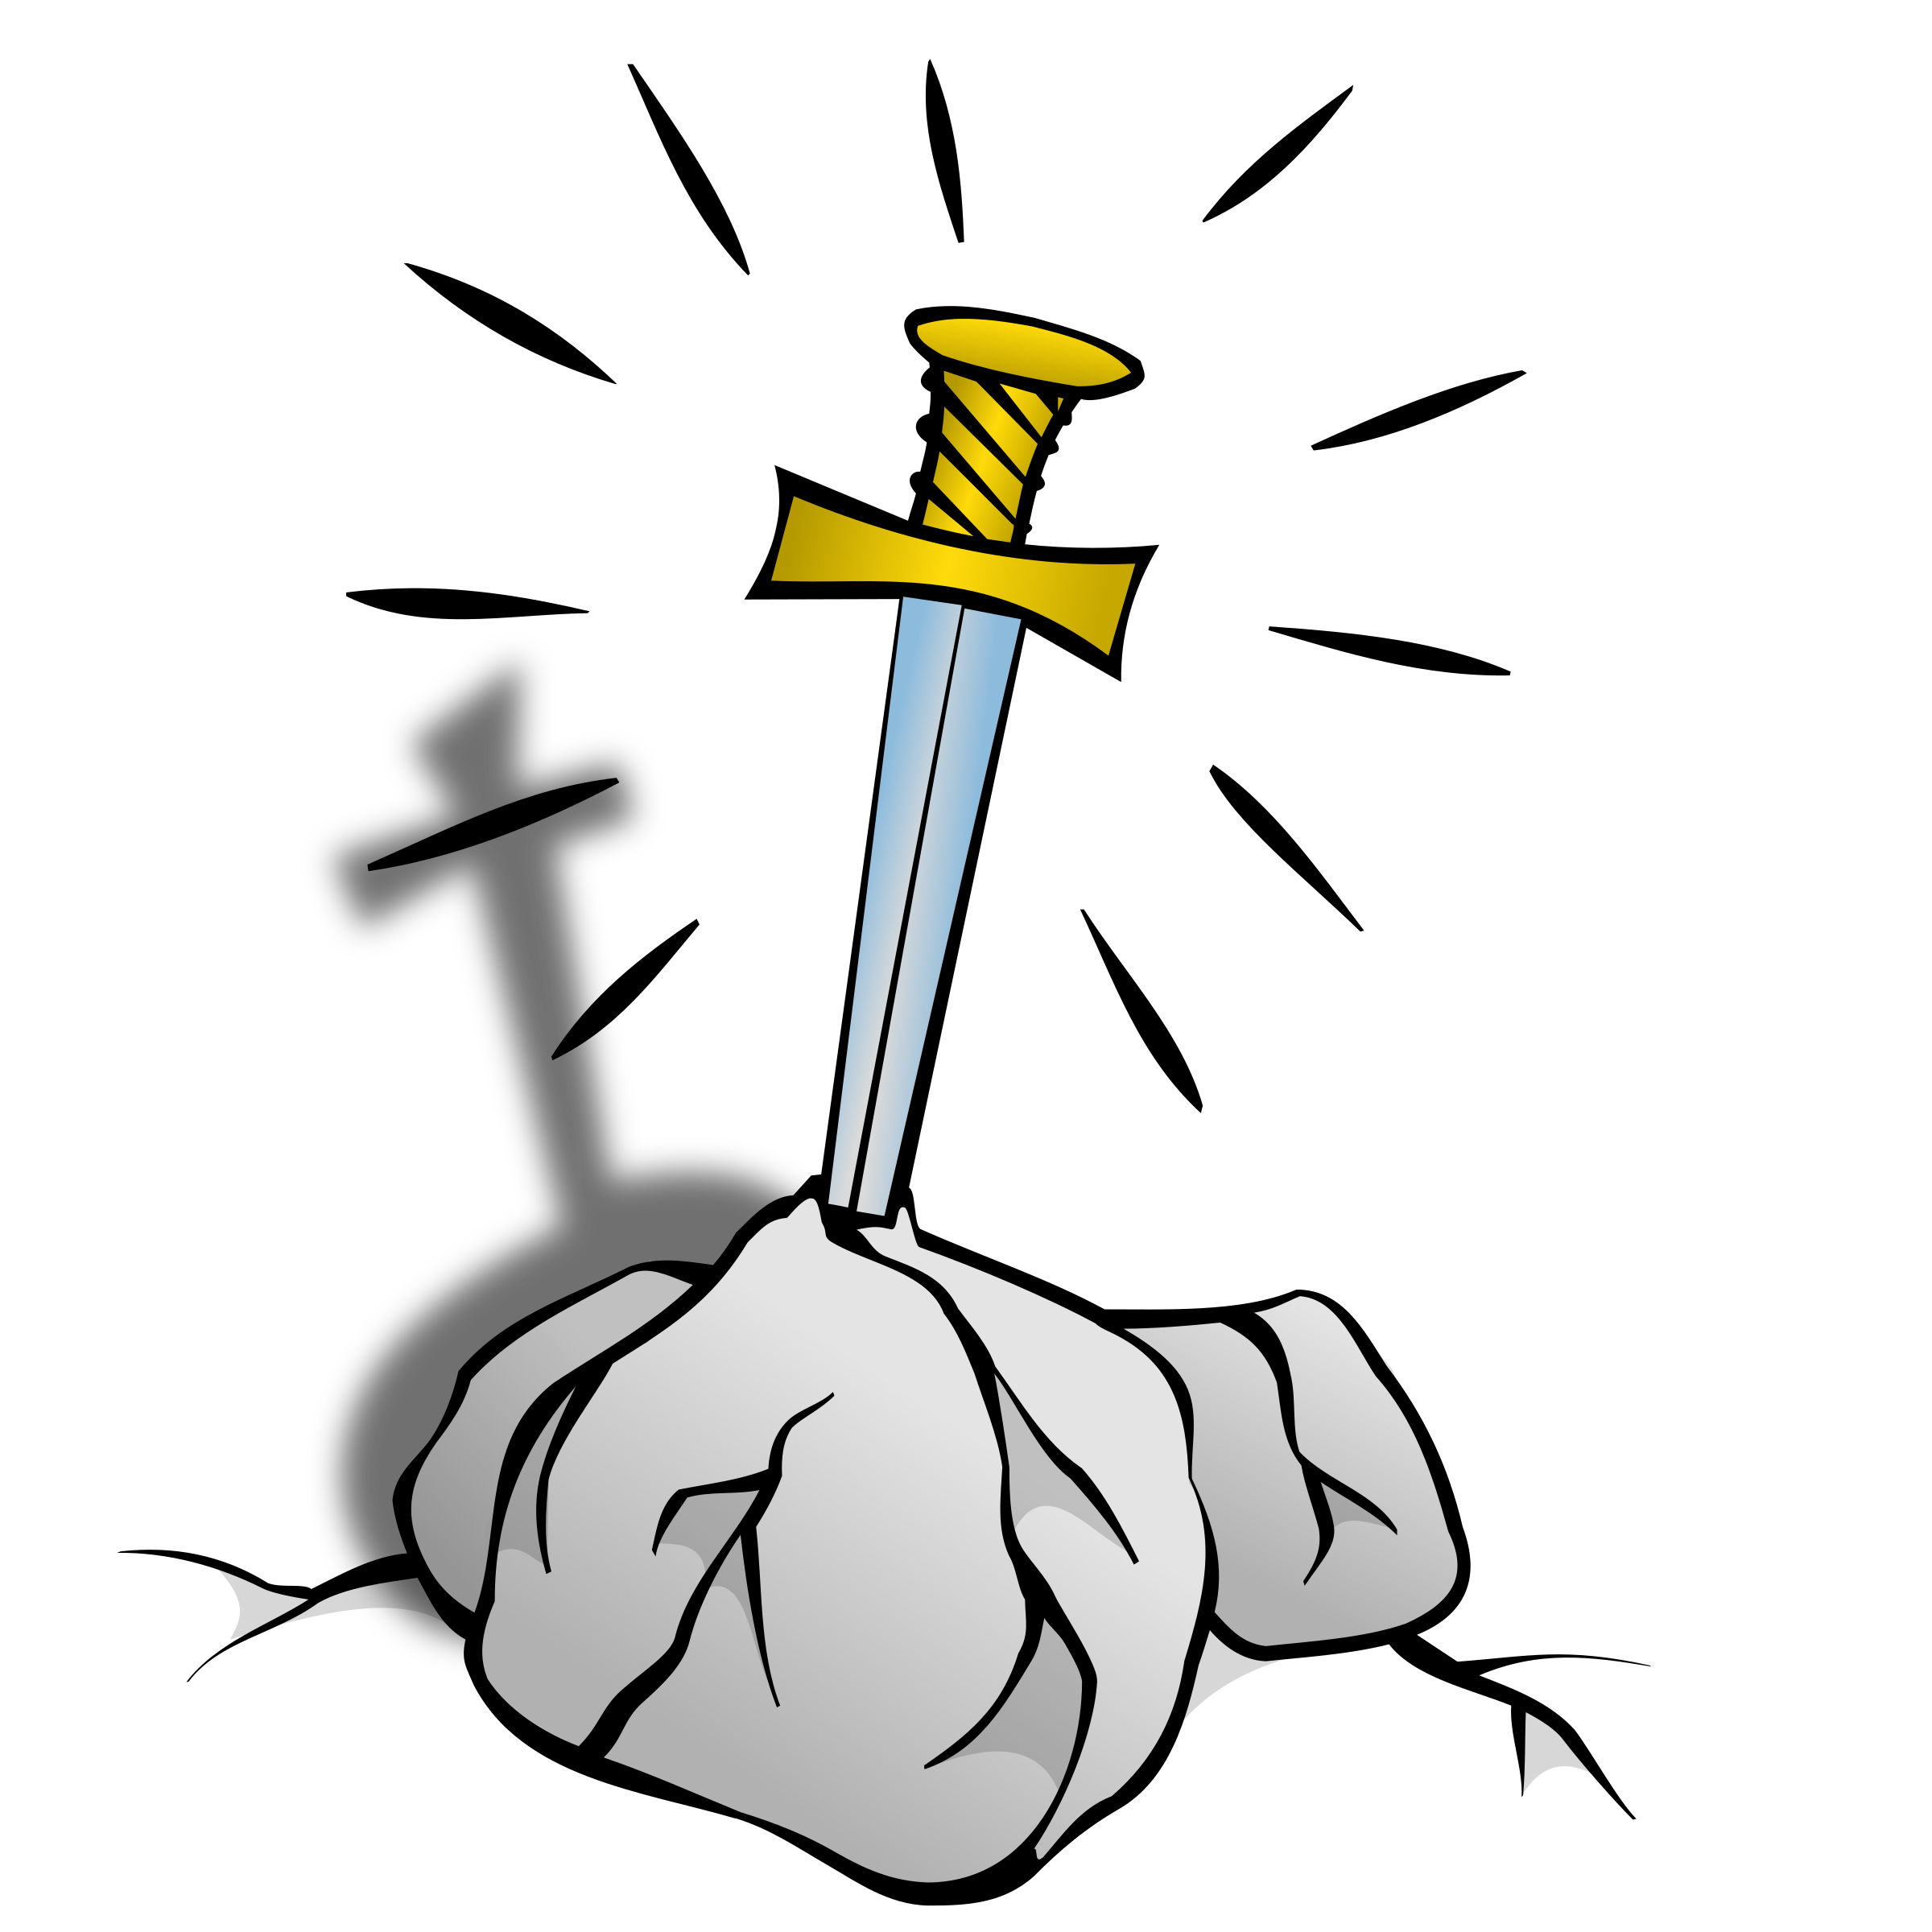 sword in the stone png